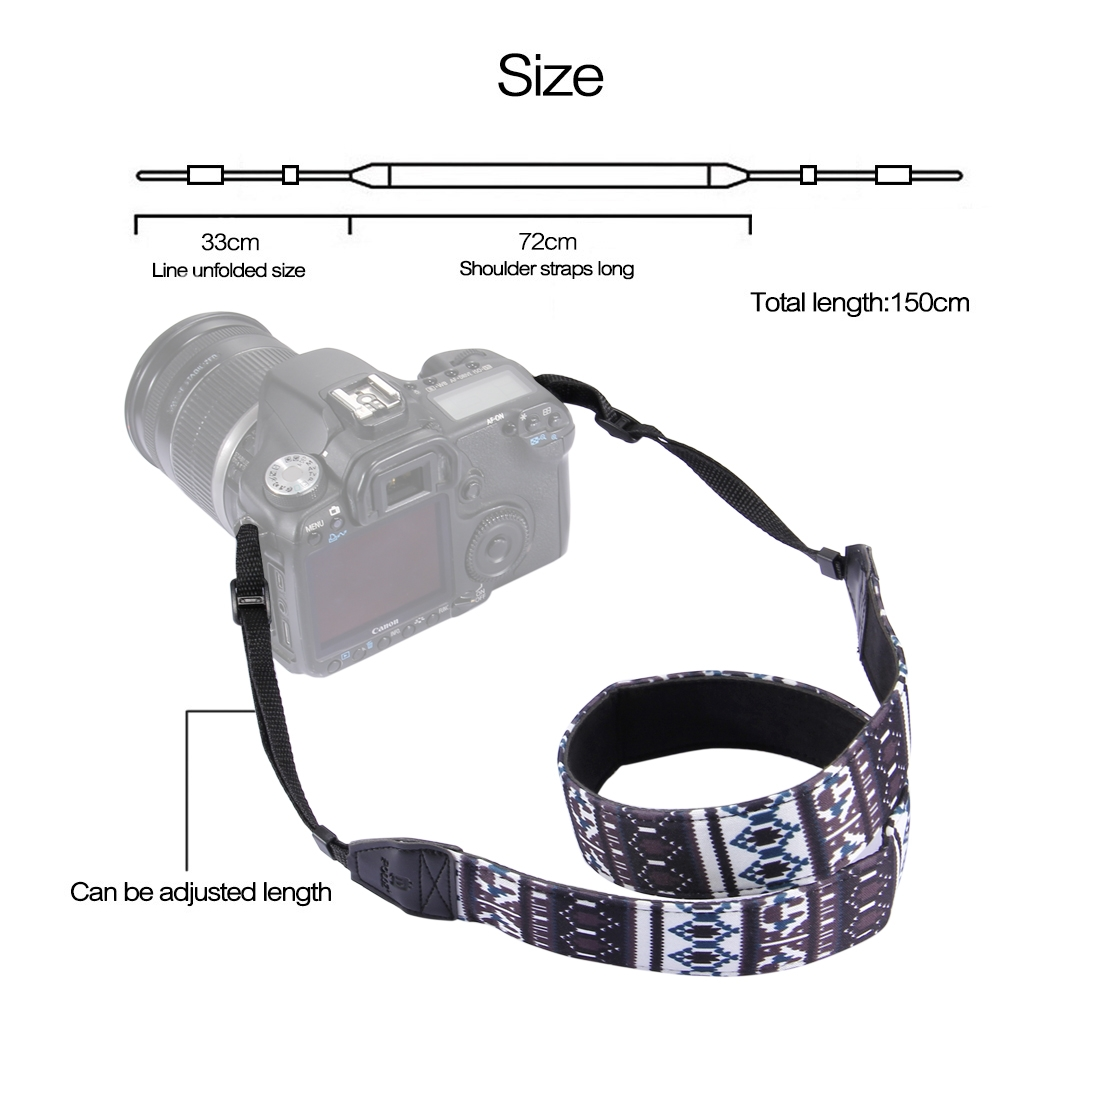 PULUZ PU6007A Retro Ethnic Style Multi-color Series Shoulder Neck Strap Camera Strap for SLR DSLR Ca